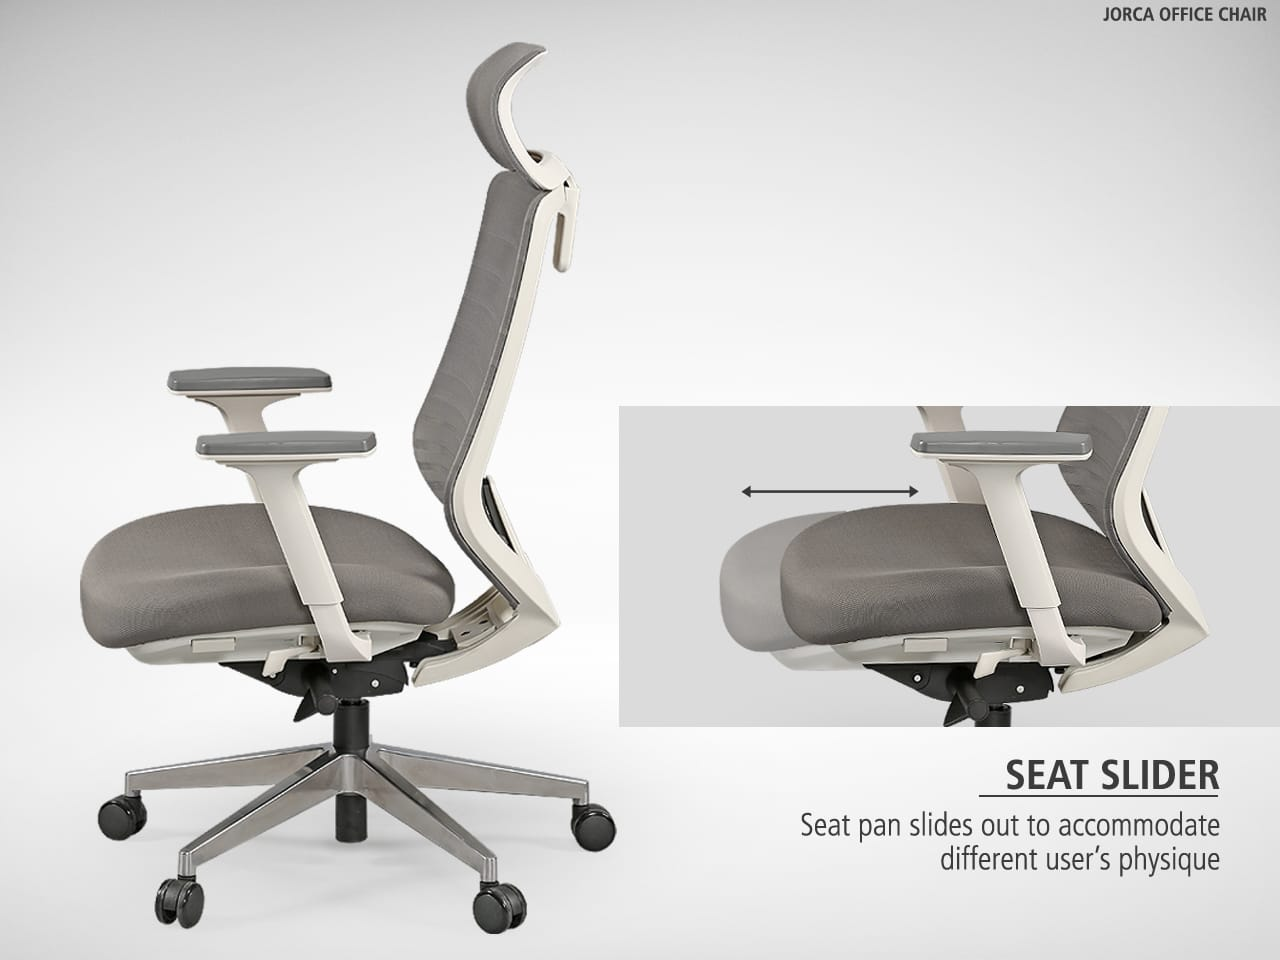 Realspace Chairs Jorca Highback Office Chair Comfort Design The Chair